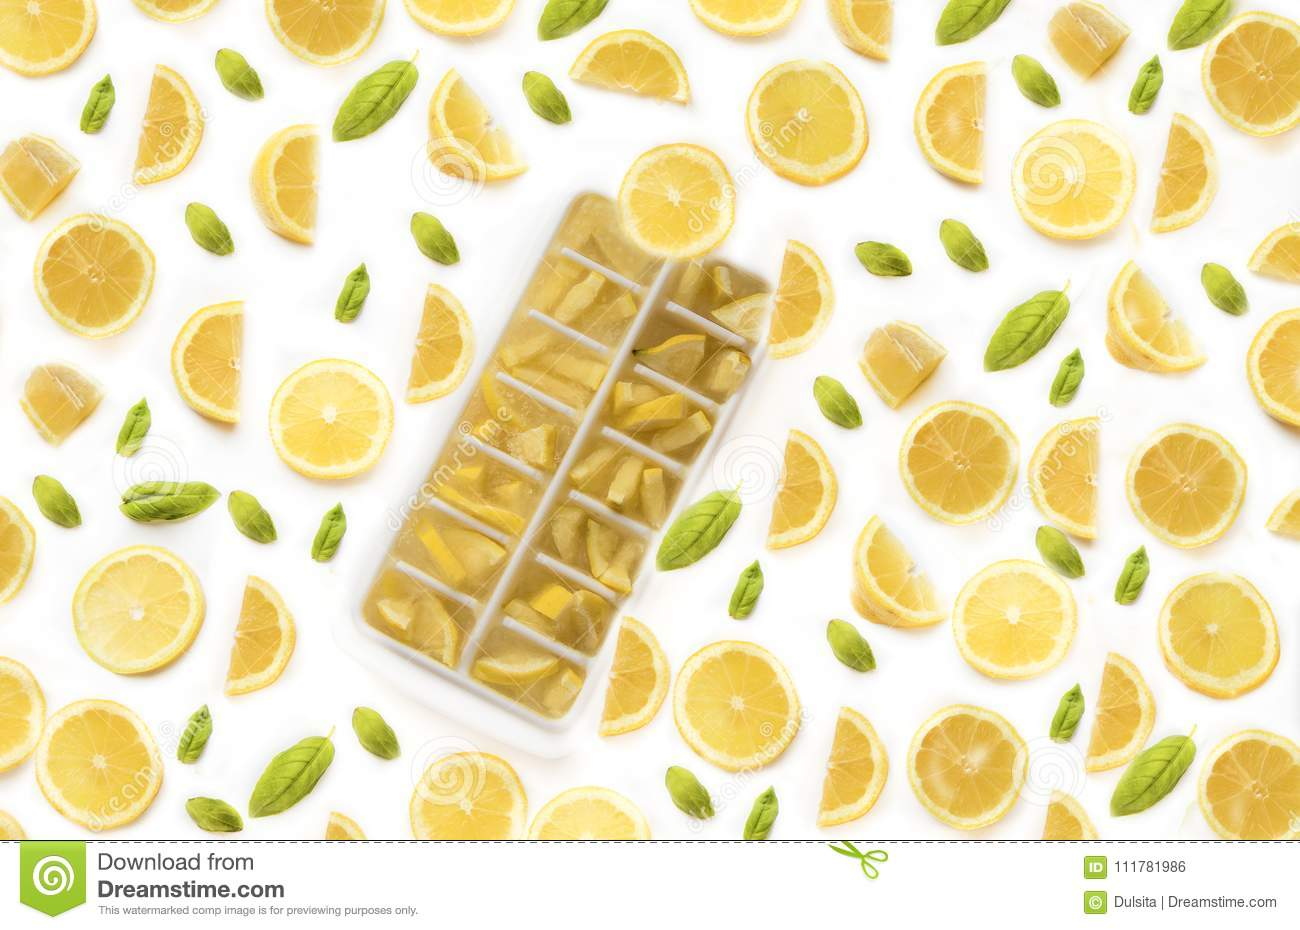 Ice cubes with lemons